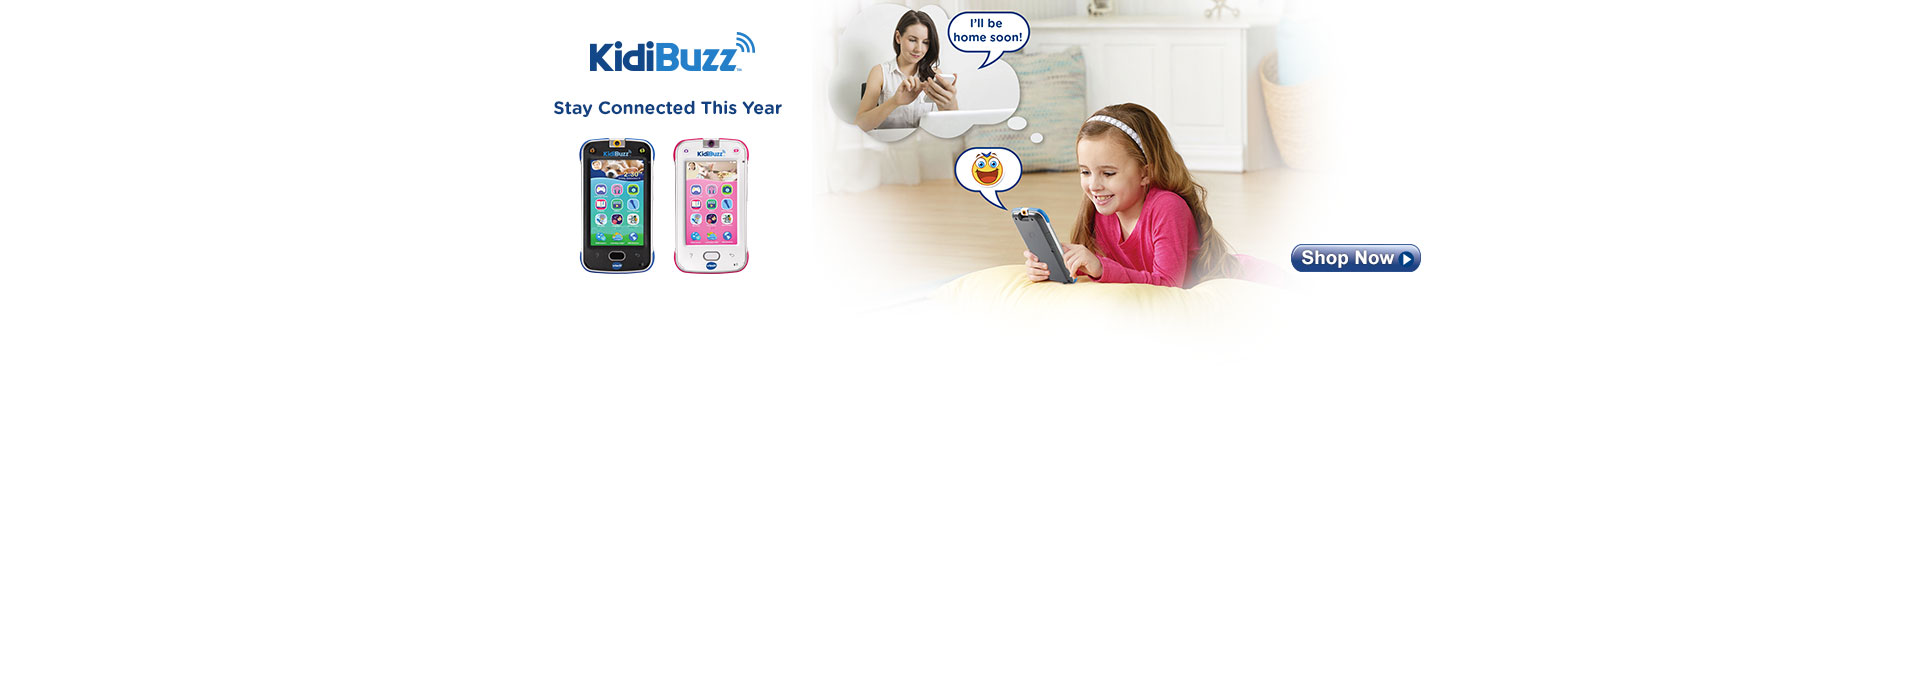 KidiBuzz (Both Colors)